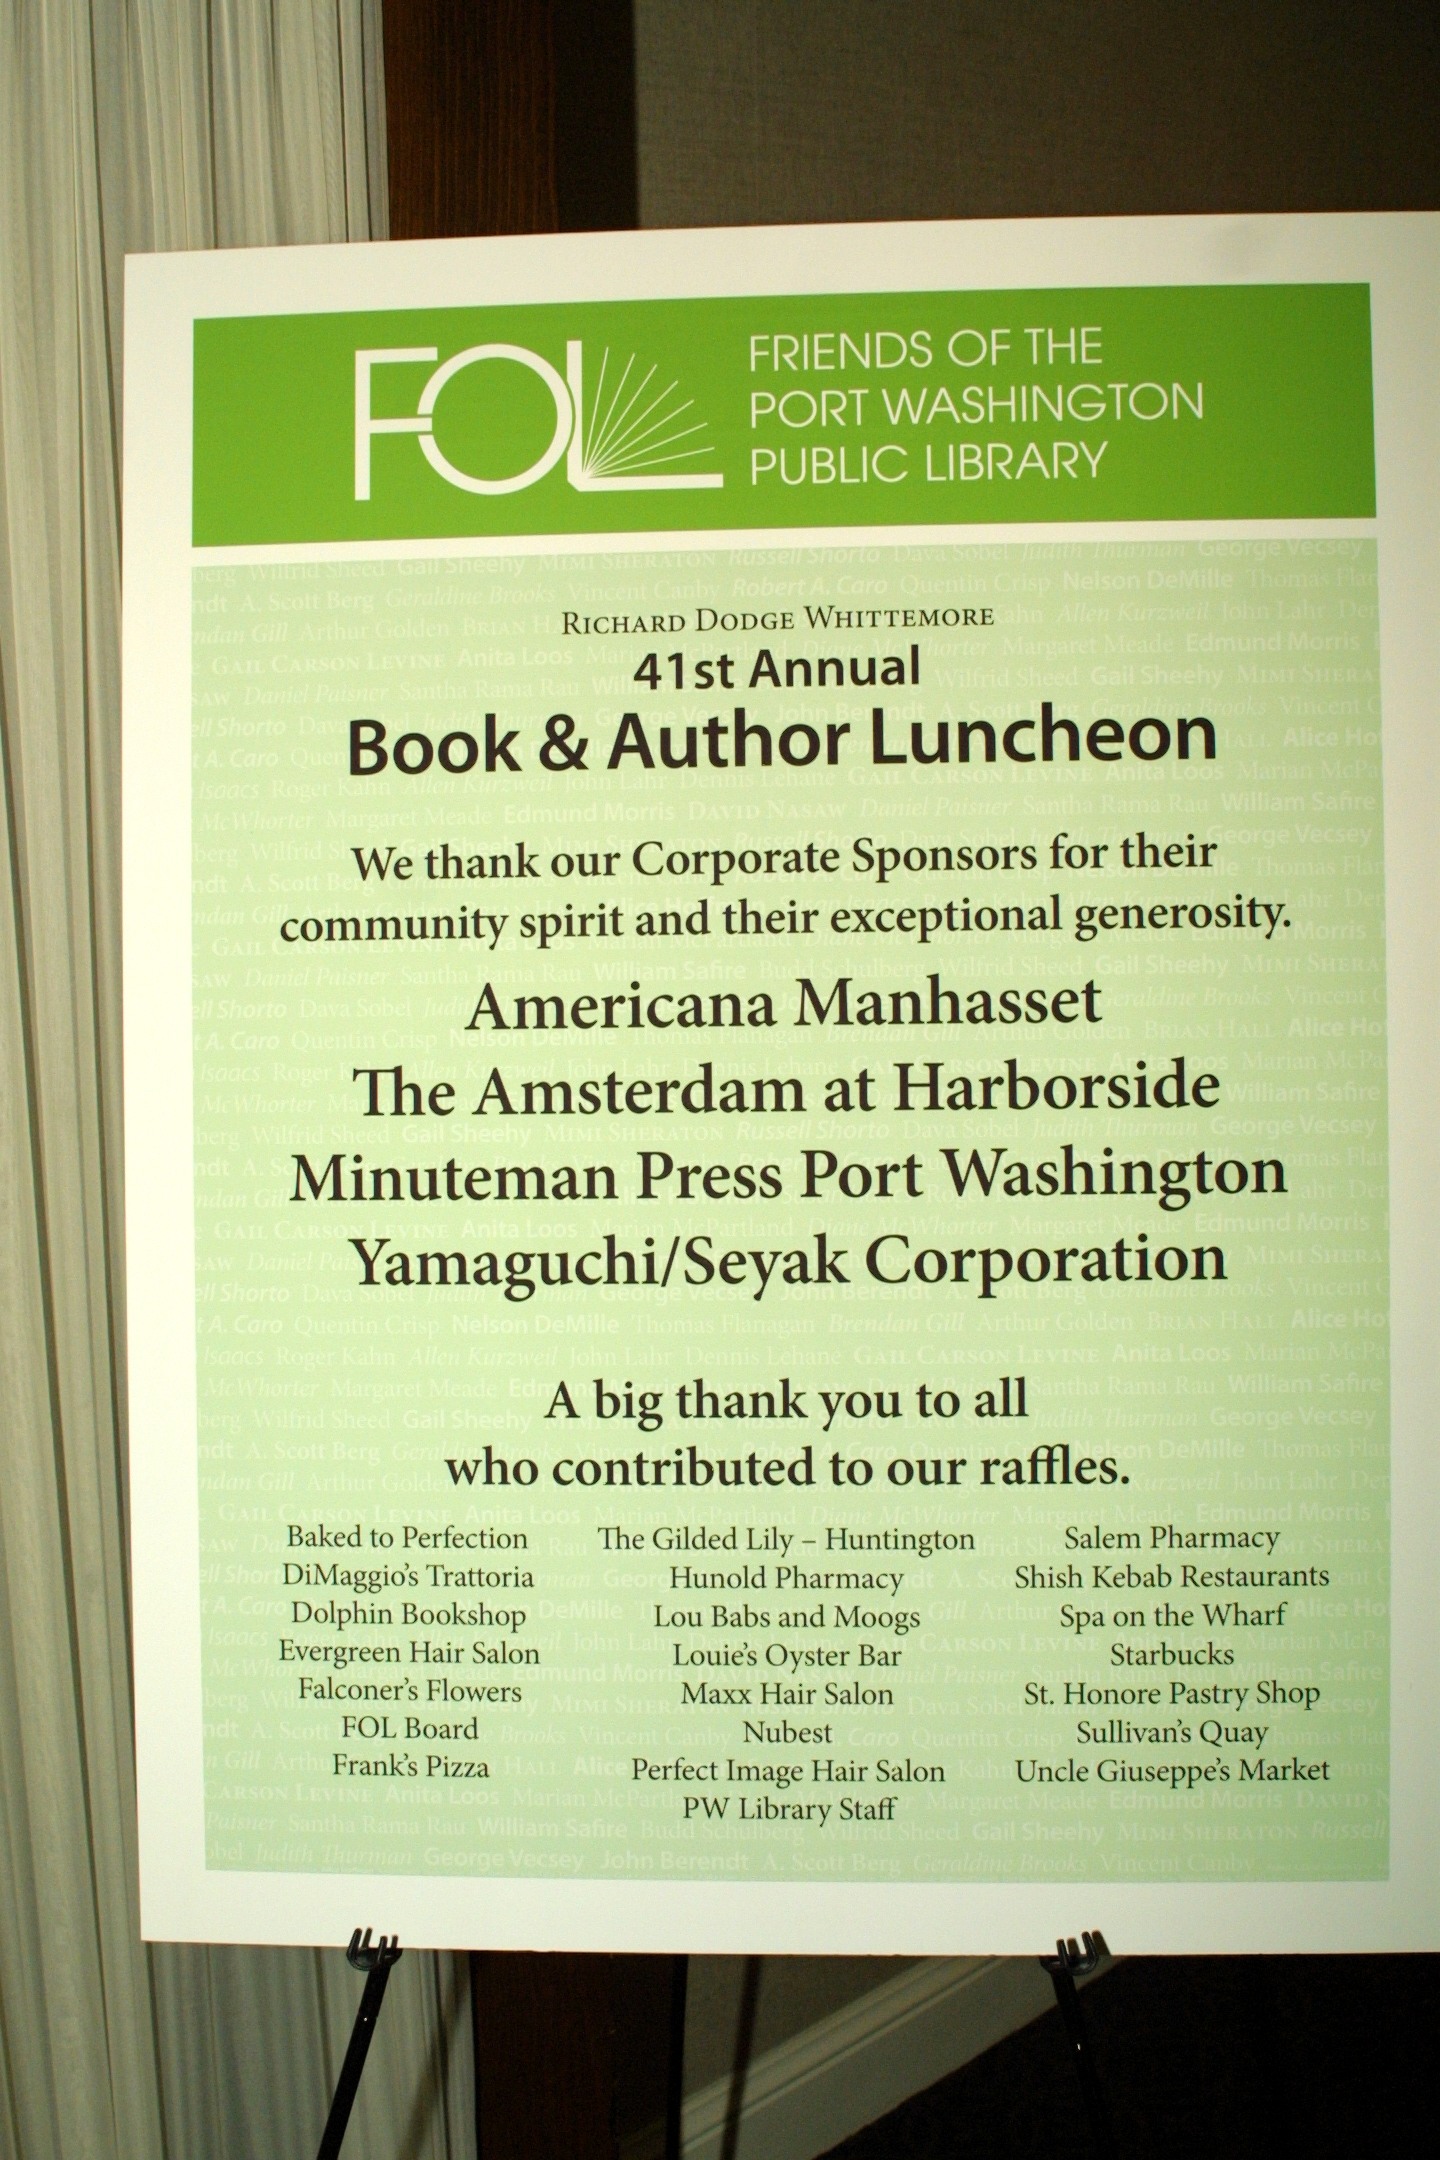 Corporate sponsors and raffle item donors helped make the 2010 Luncheon a financial success.